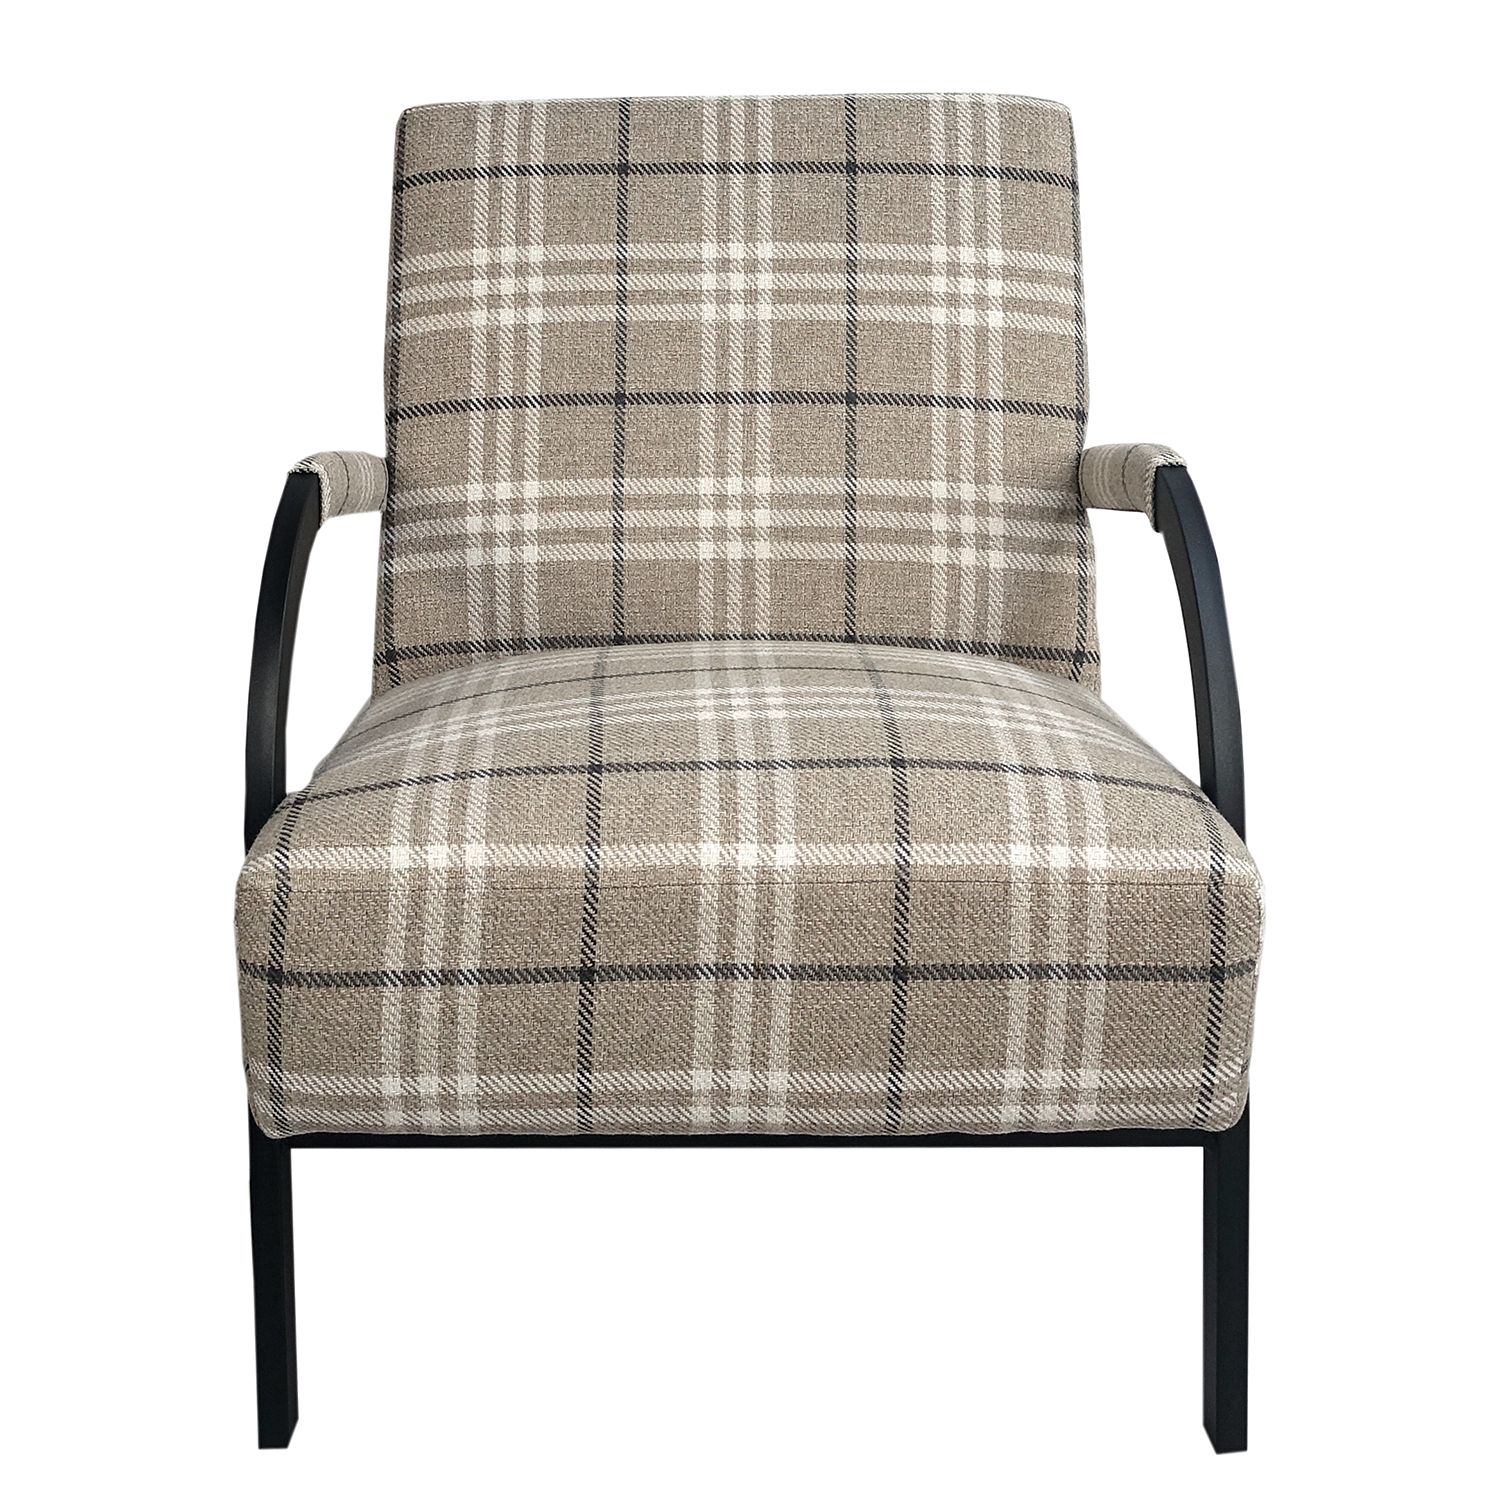 Fauteuil Hoxie, ars manufacti